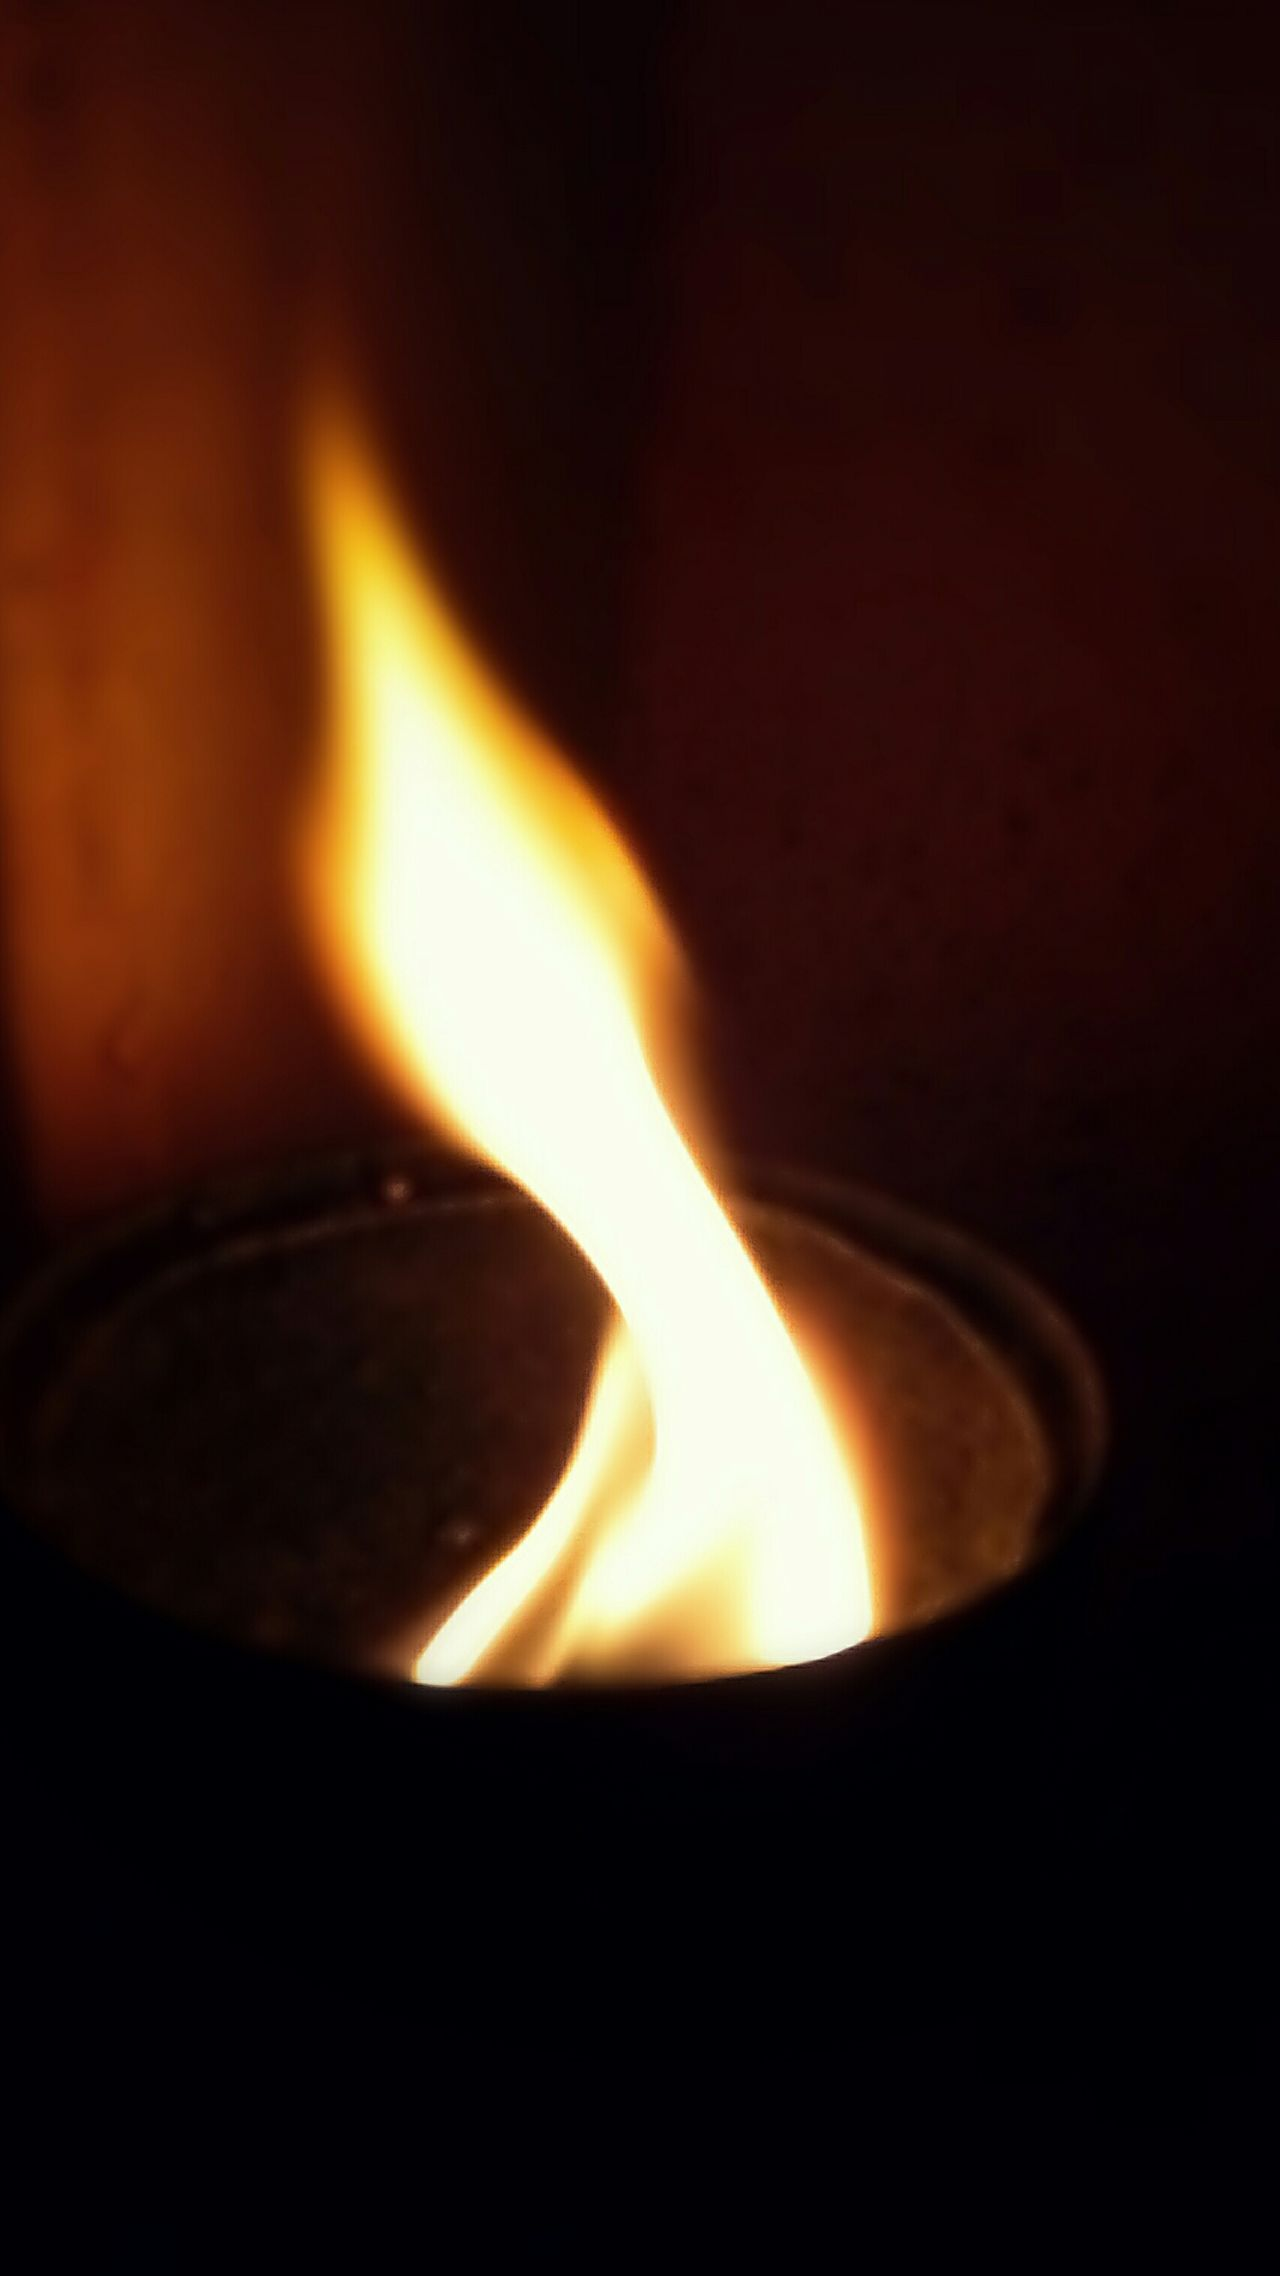 Flame Life Is A Fire Mobile Photography Earth Is Beating Hearts Are Burning No Peace In The World